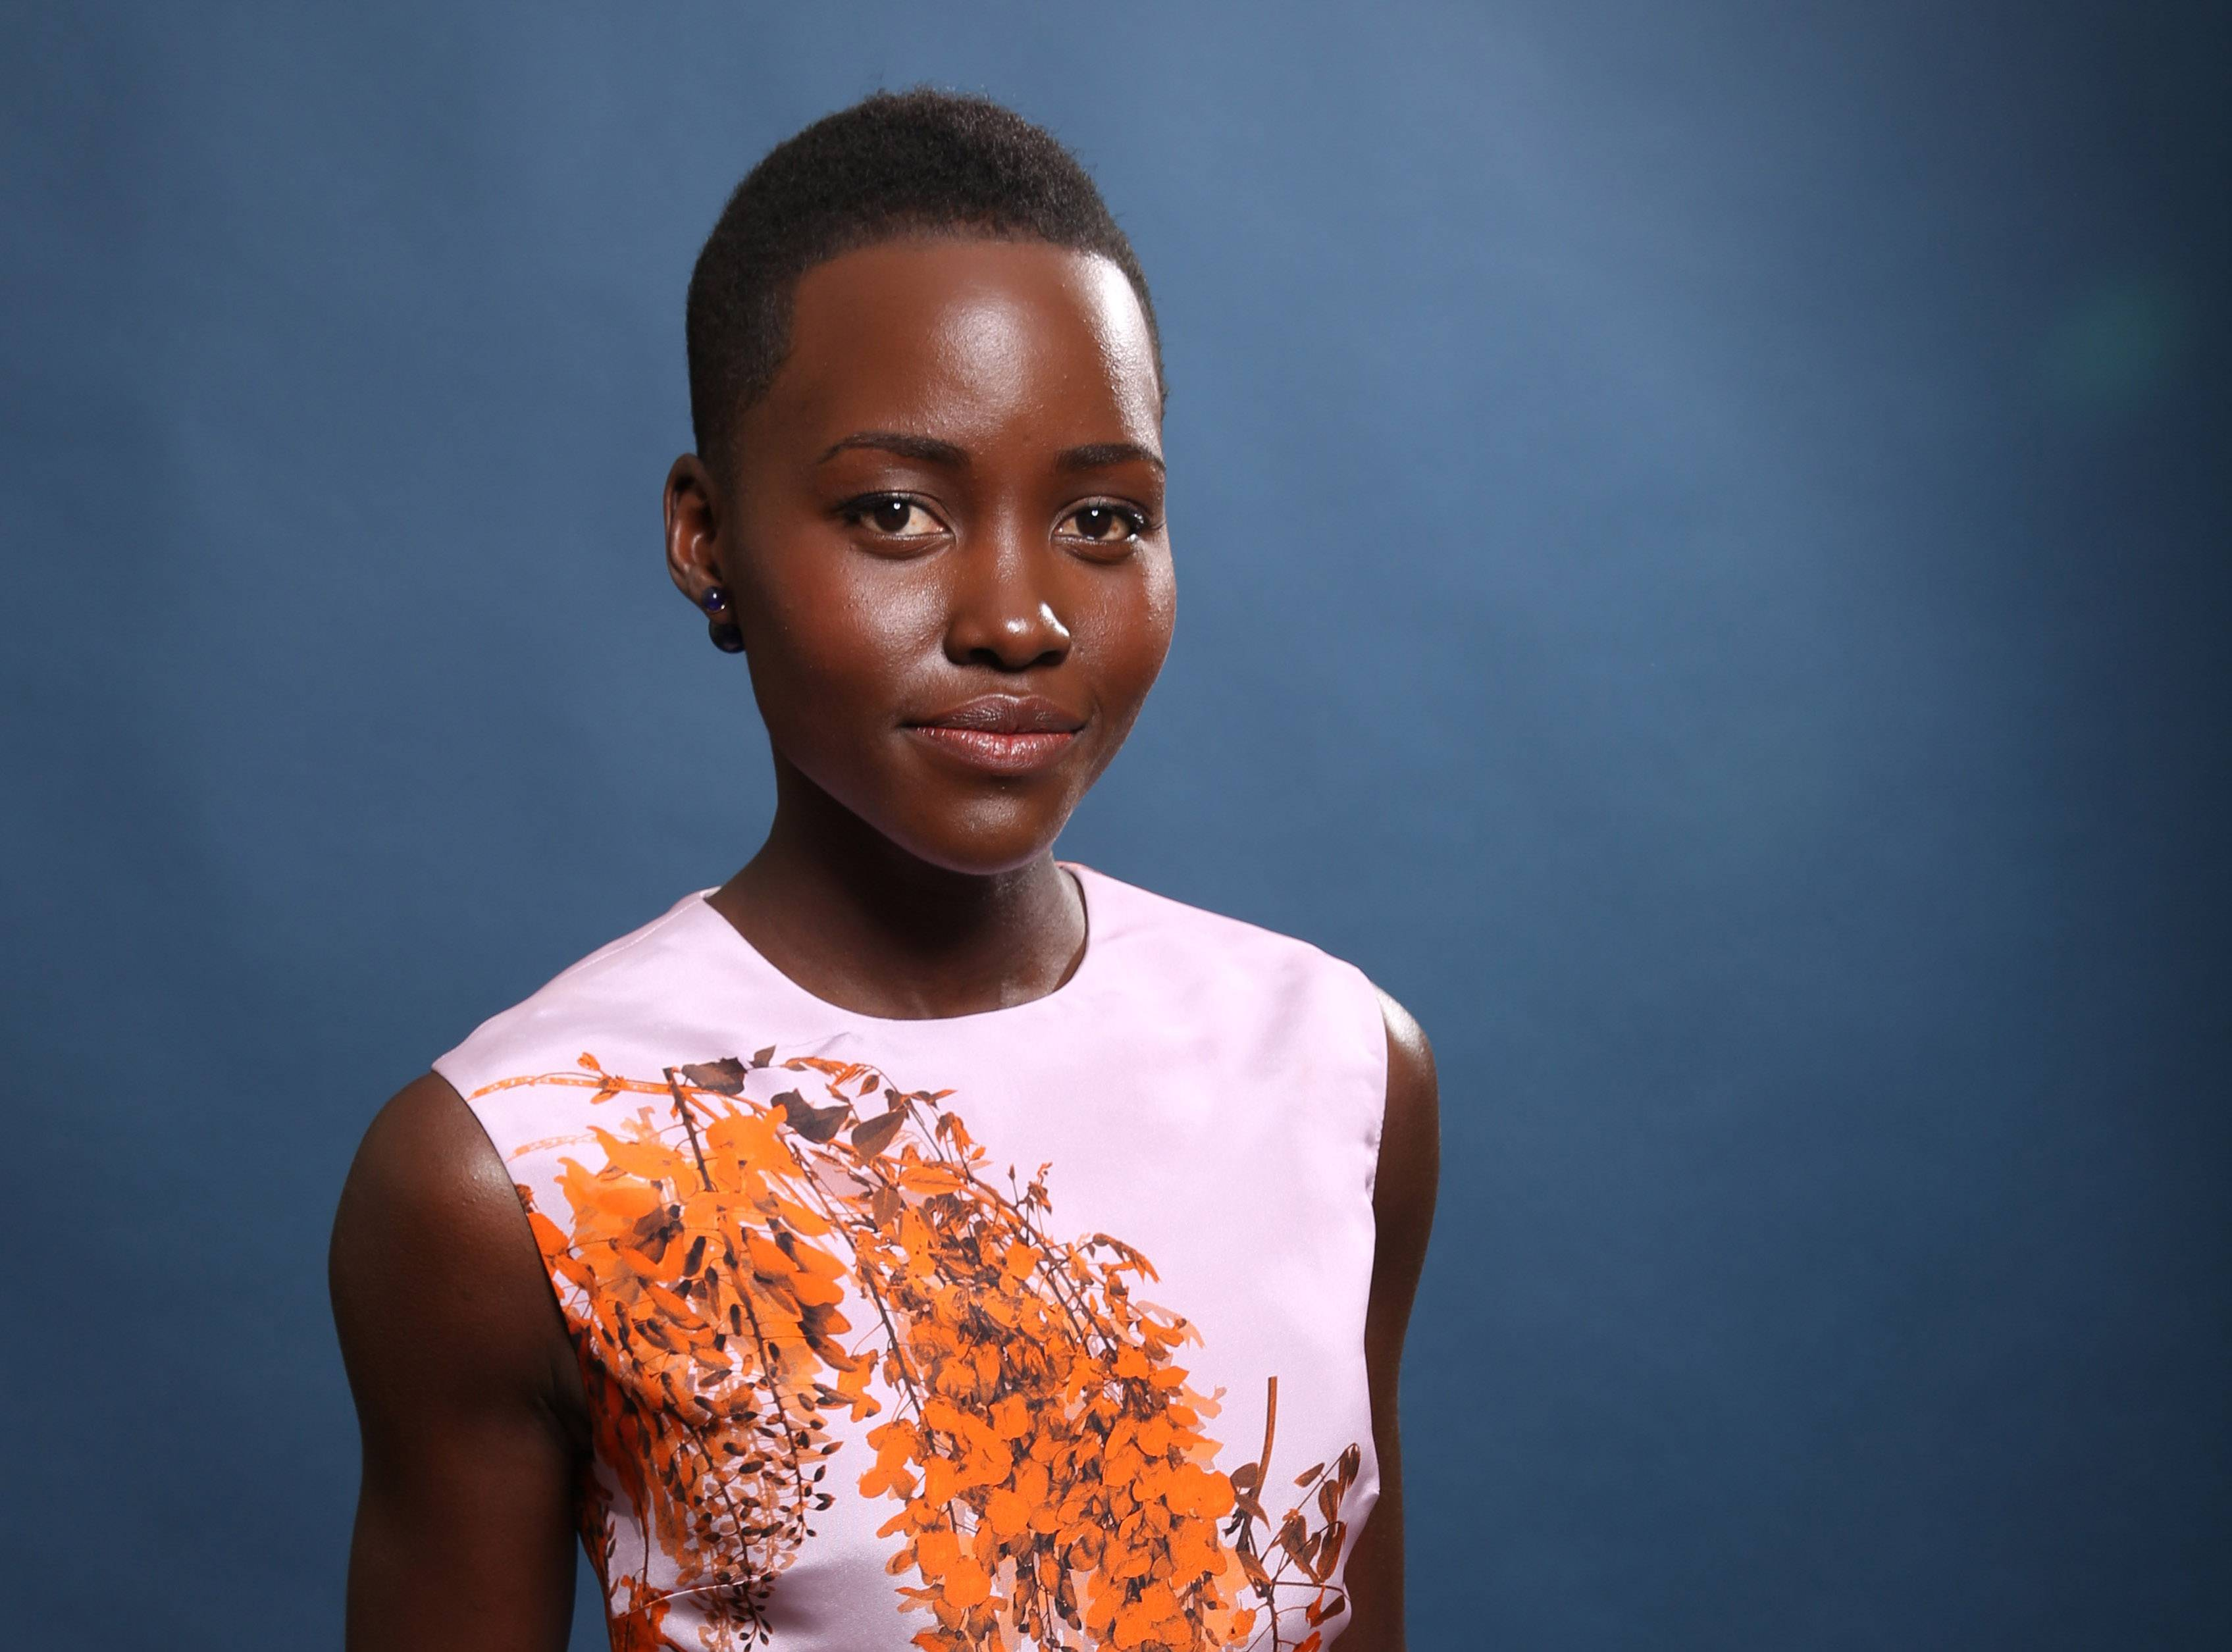 """I try to keep my regimen — rest, water, eat well, workout — so that when this is all over, I don't experience a total hangover,"" says Lupita Nyong'o."